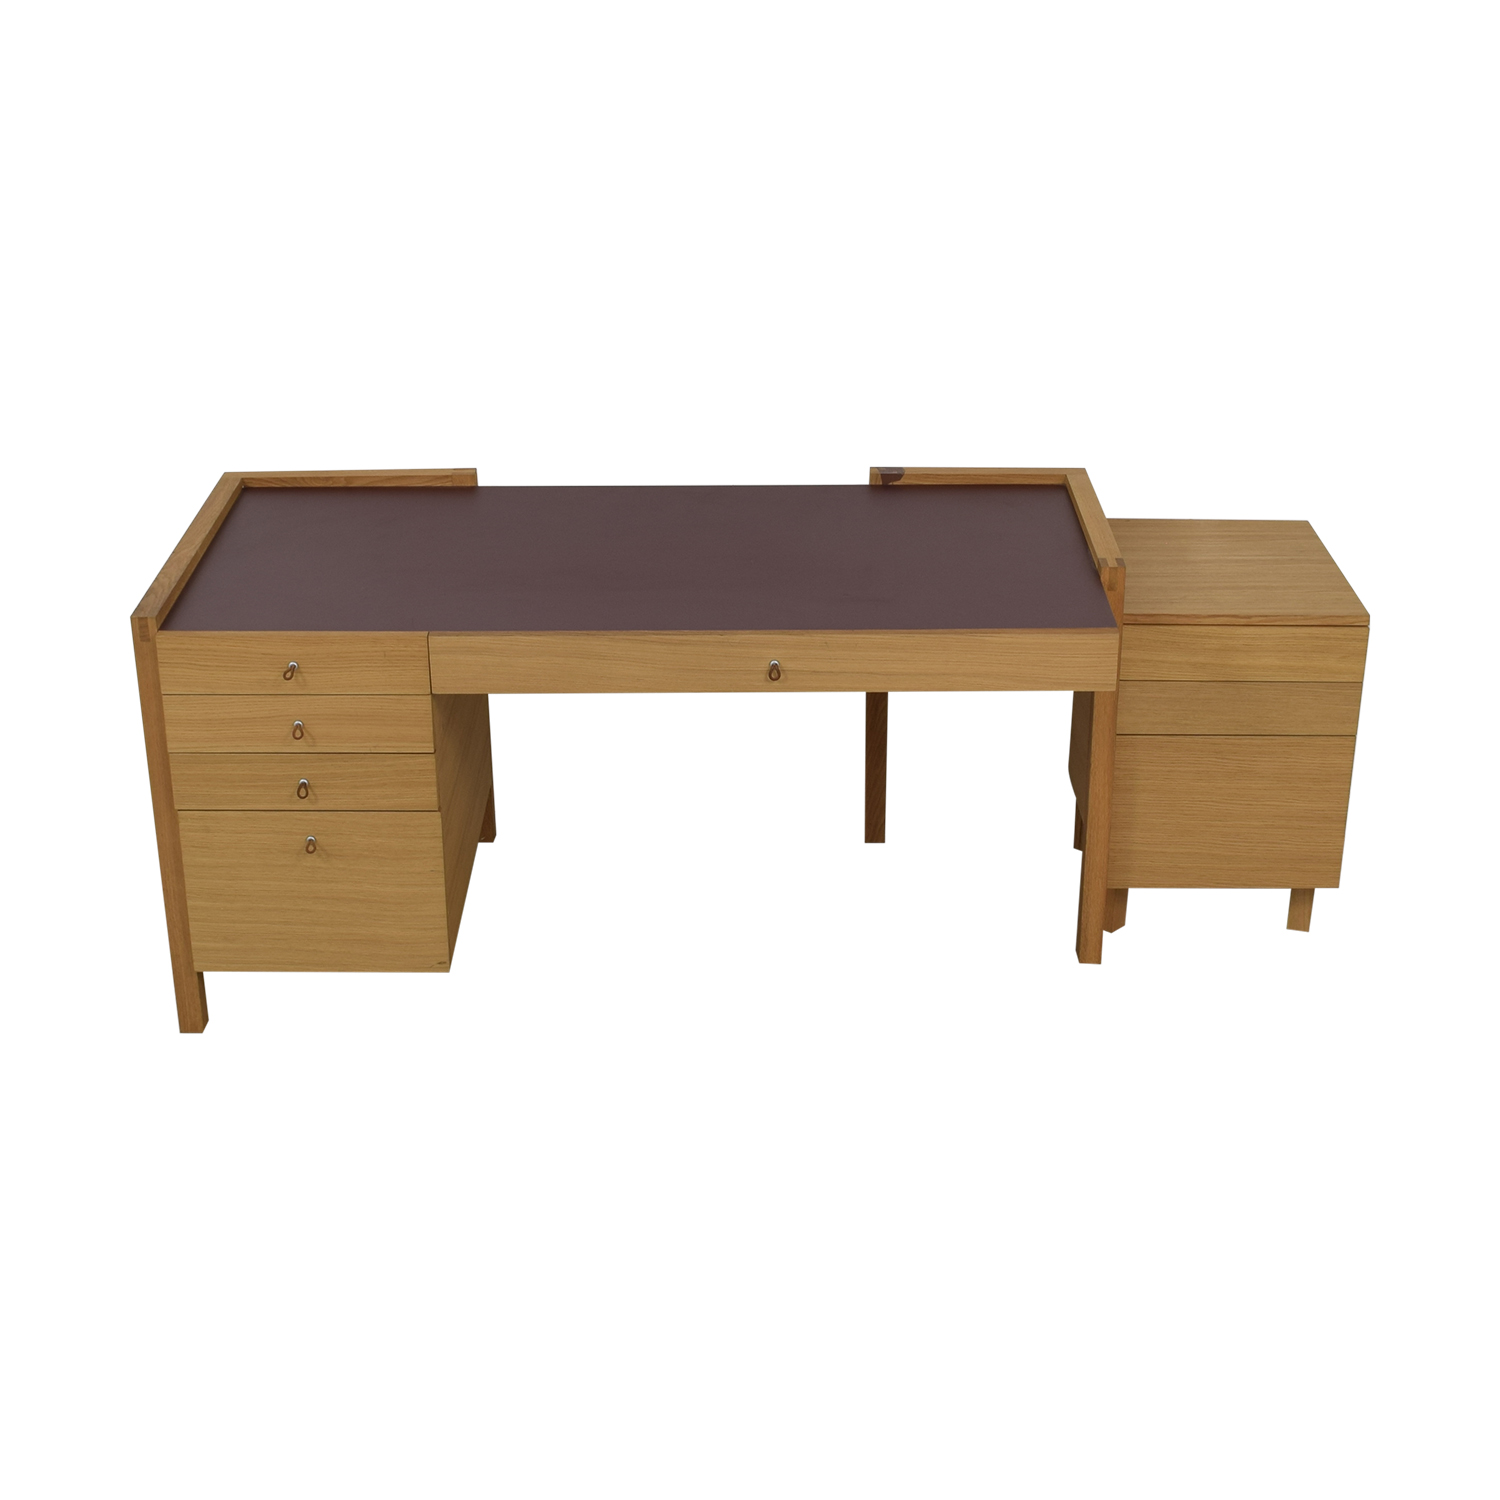 Eight-Drawer Oak Desk and Side Table used